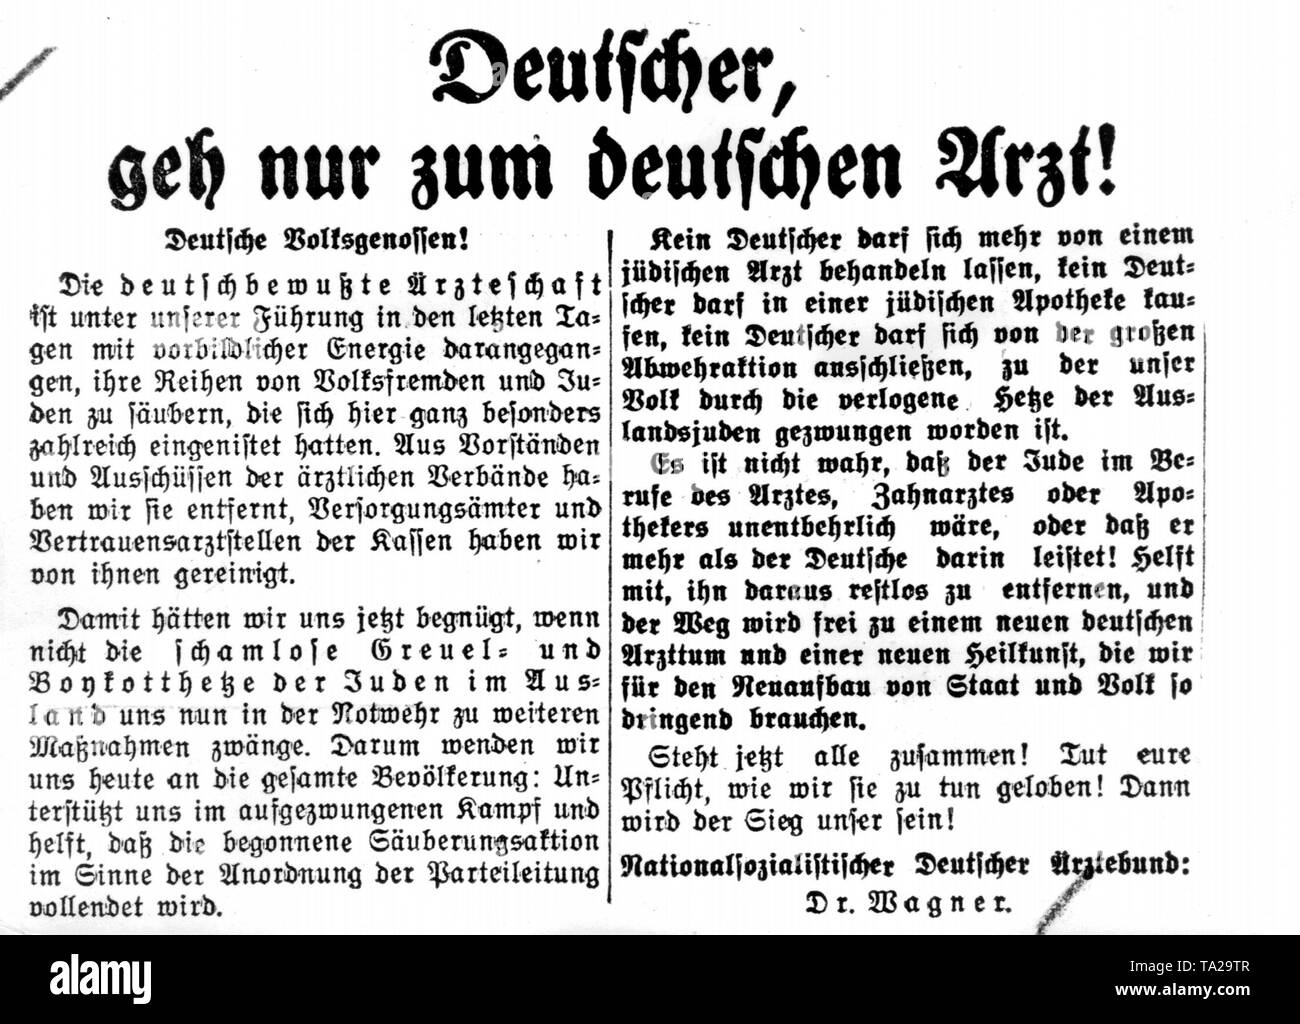 Call for a boycott of Jewish doctors. Detail from the Voelkischer Beobachter from 01.04.1933. - Stock Image